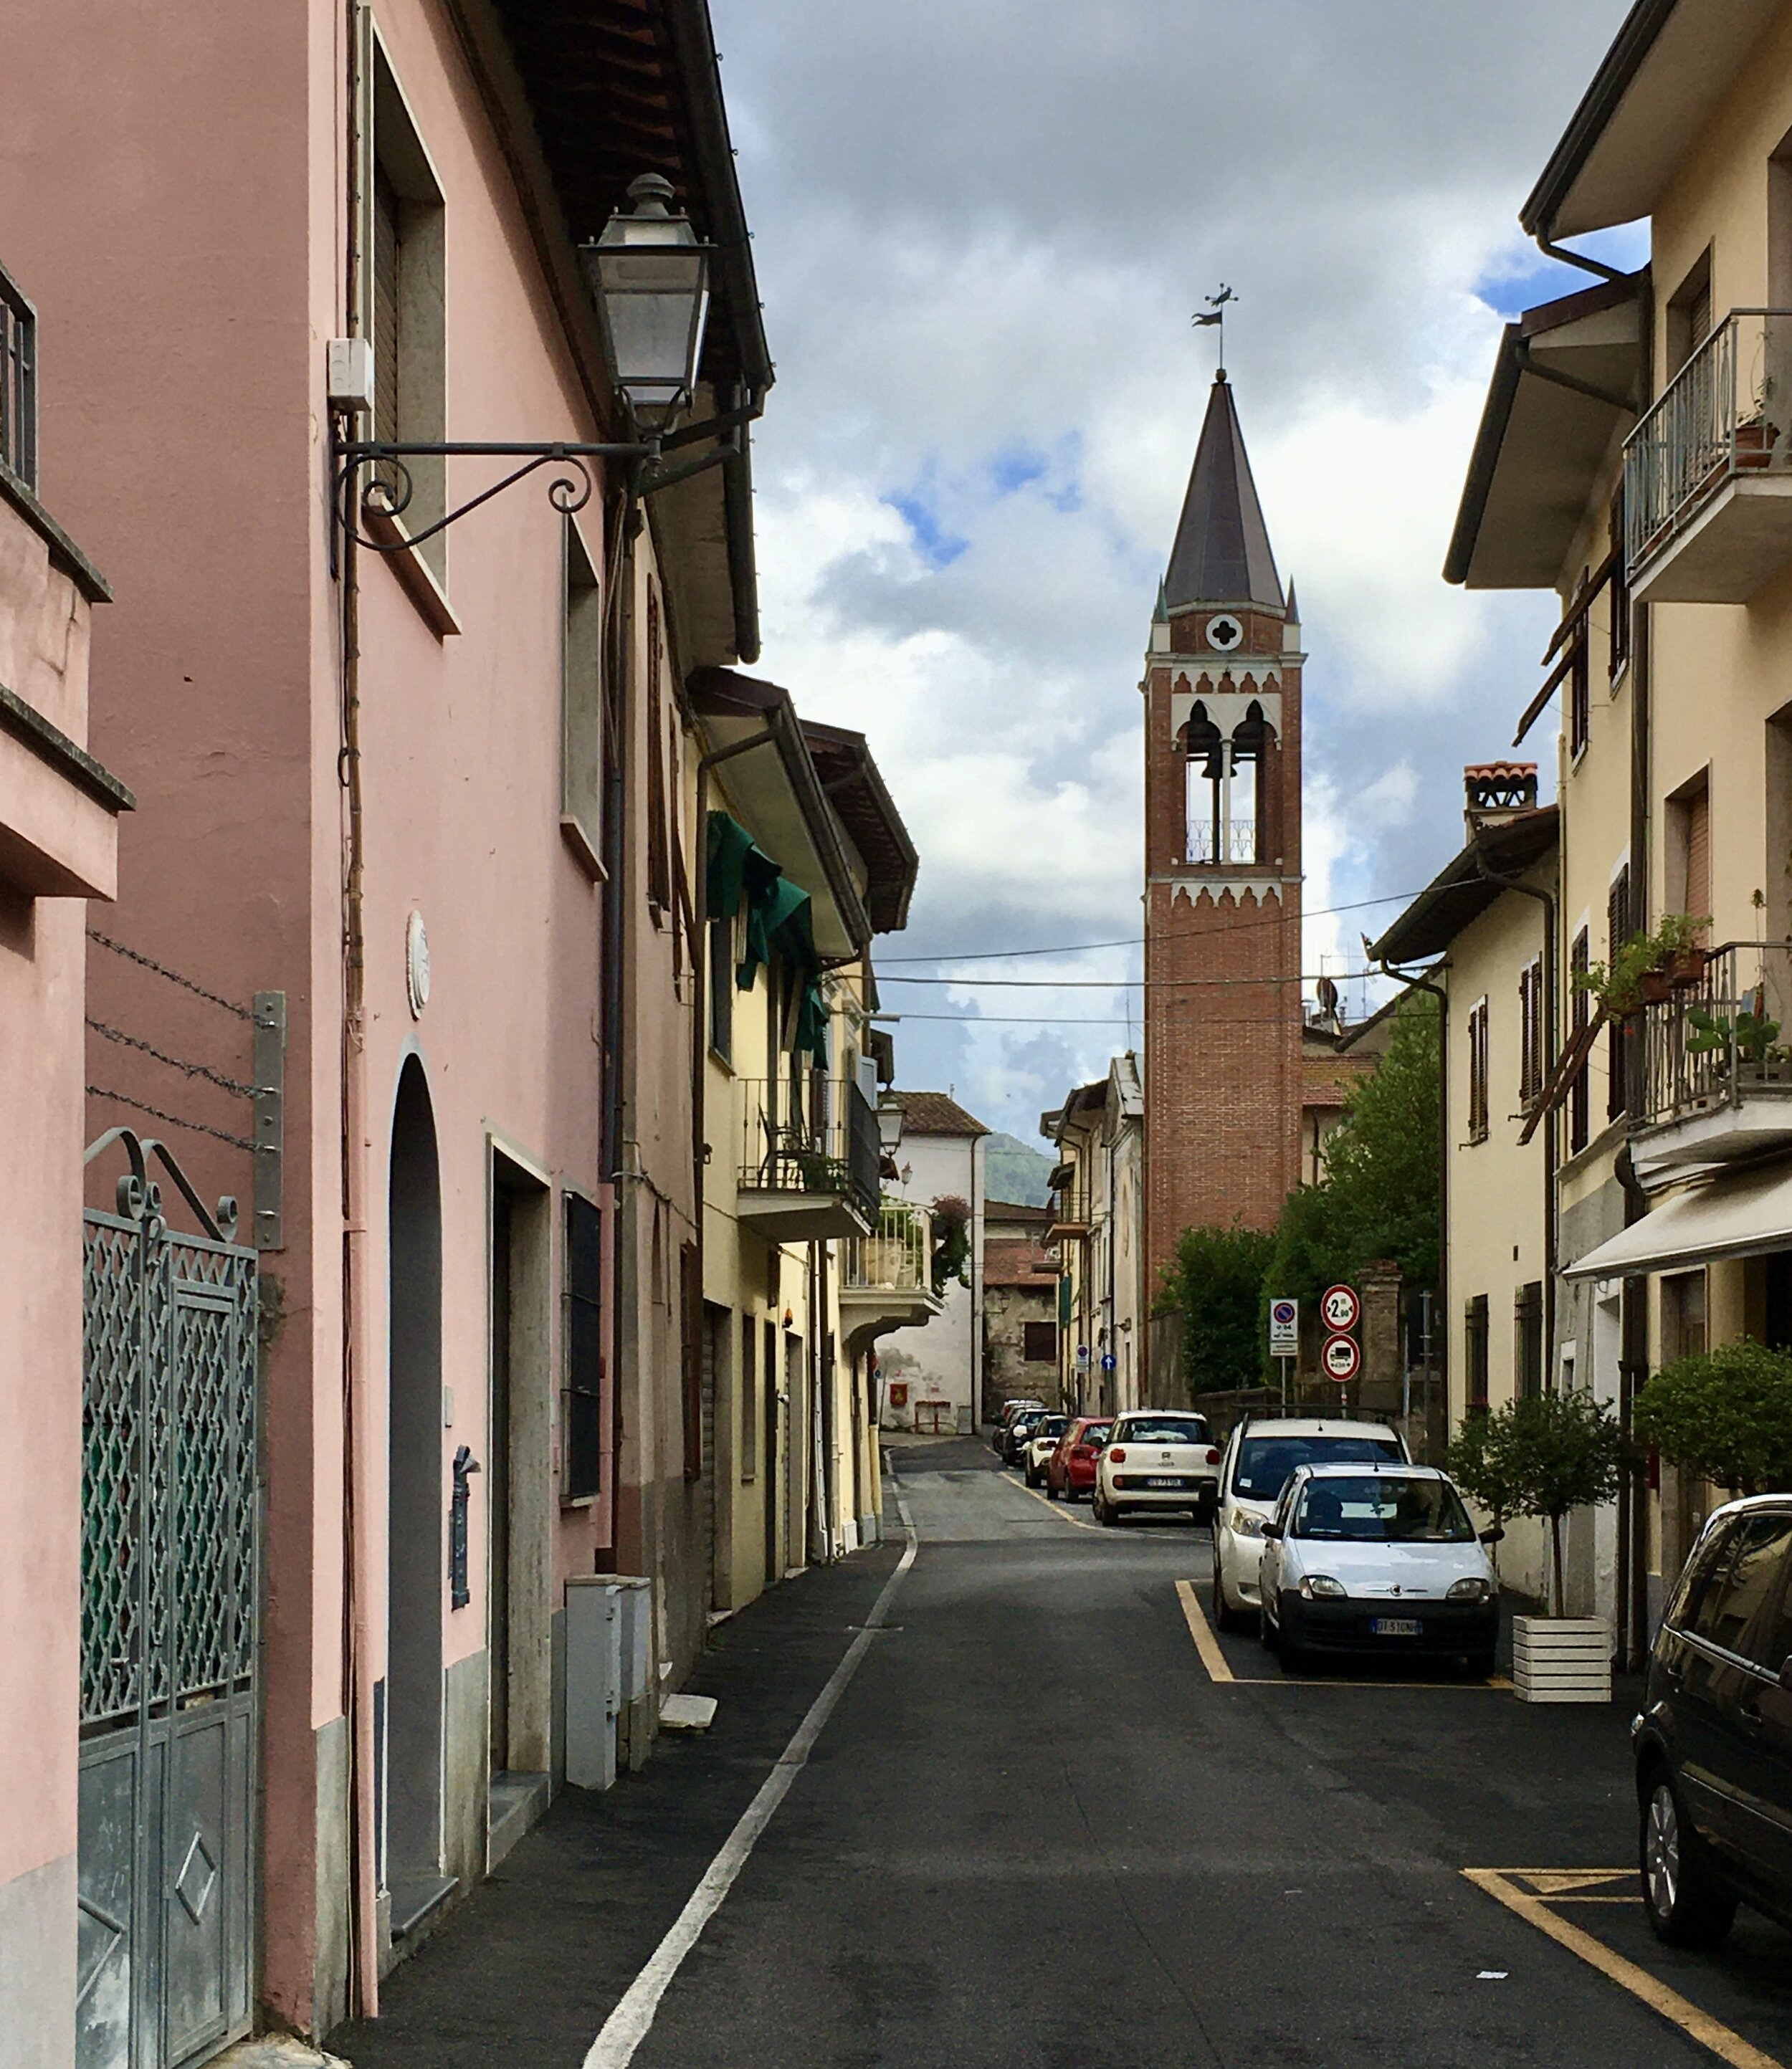 It seems almost every street in the center of Camaiore offers a picturesque view.